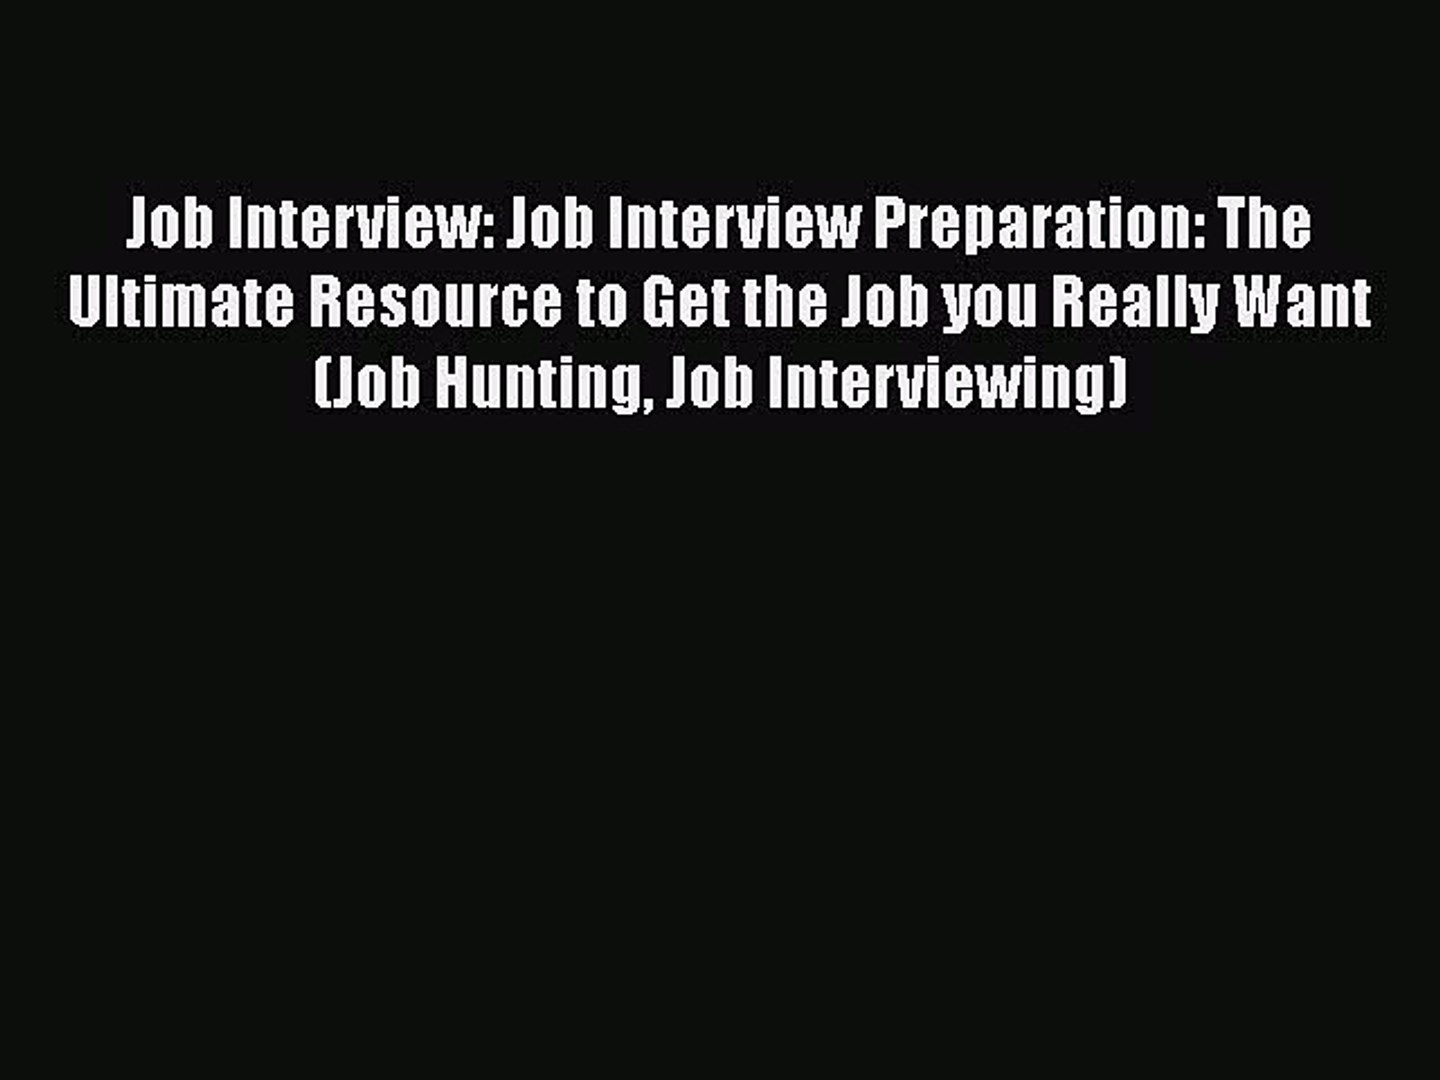 [Read book] Job Interview: Job Interview Preparation: The Ultimate Resource to Get the Job